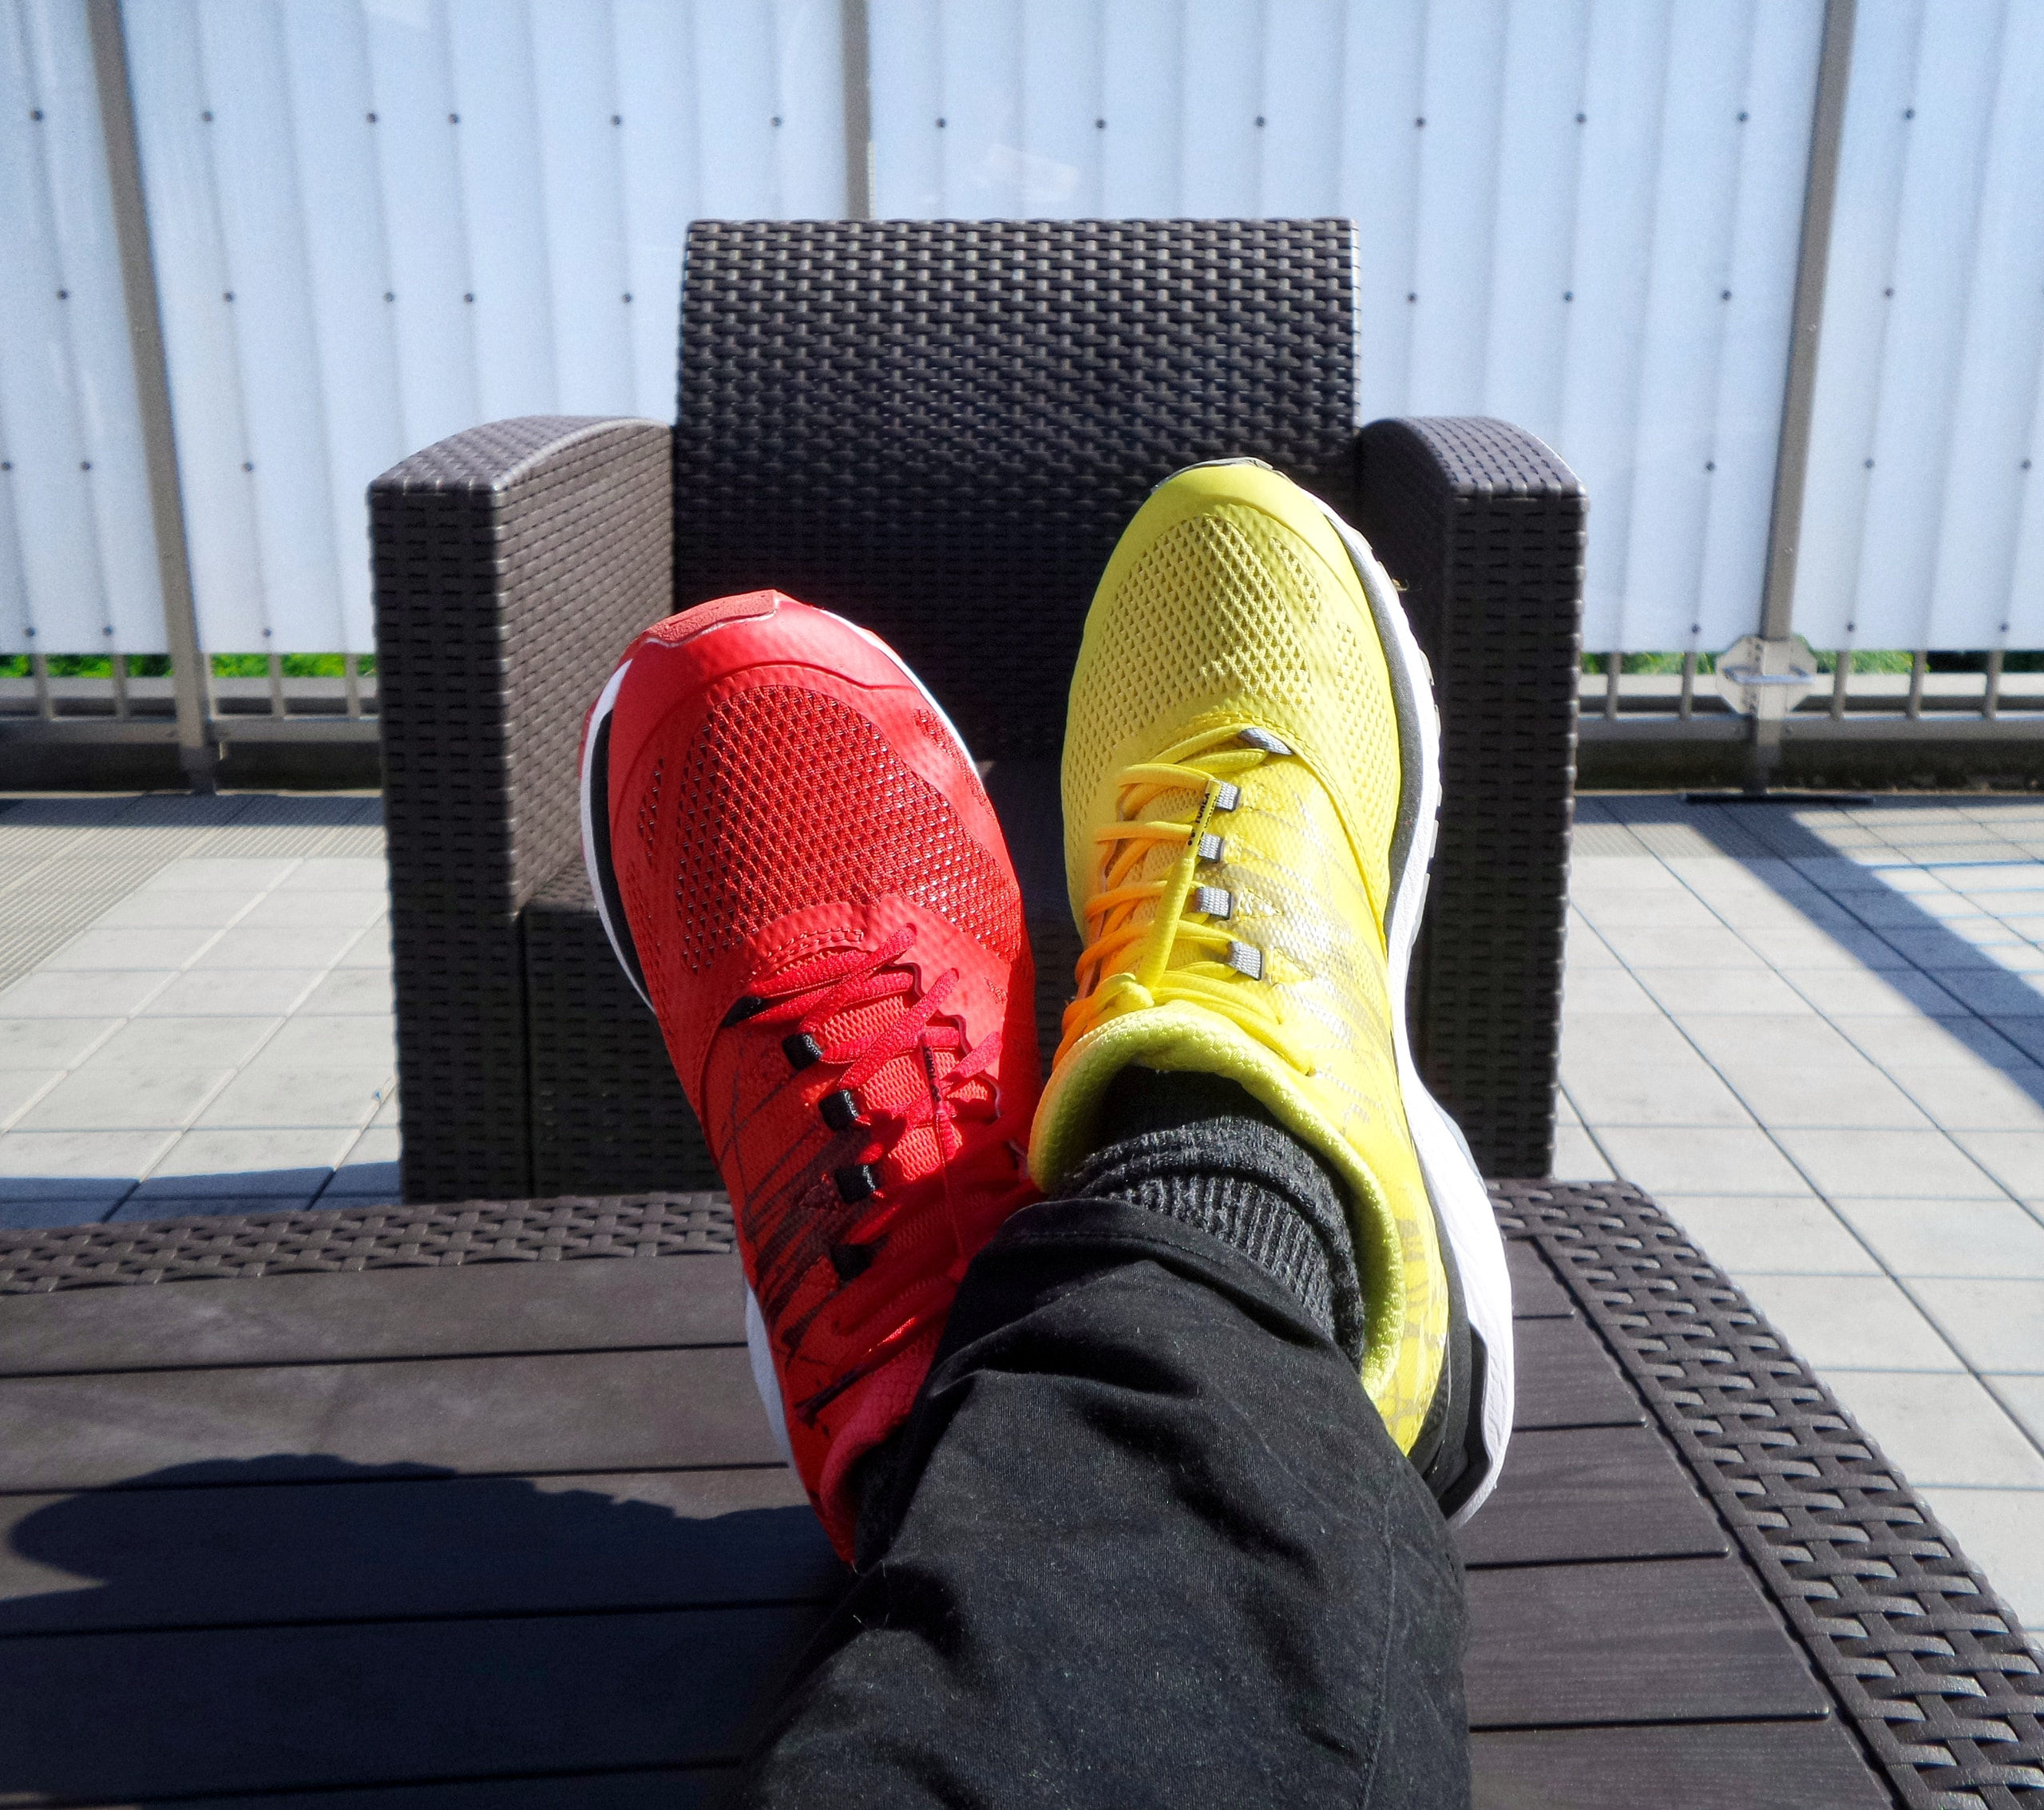 pair of red-and-yellow sneakers